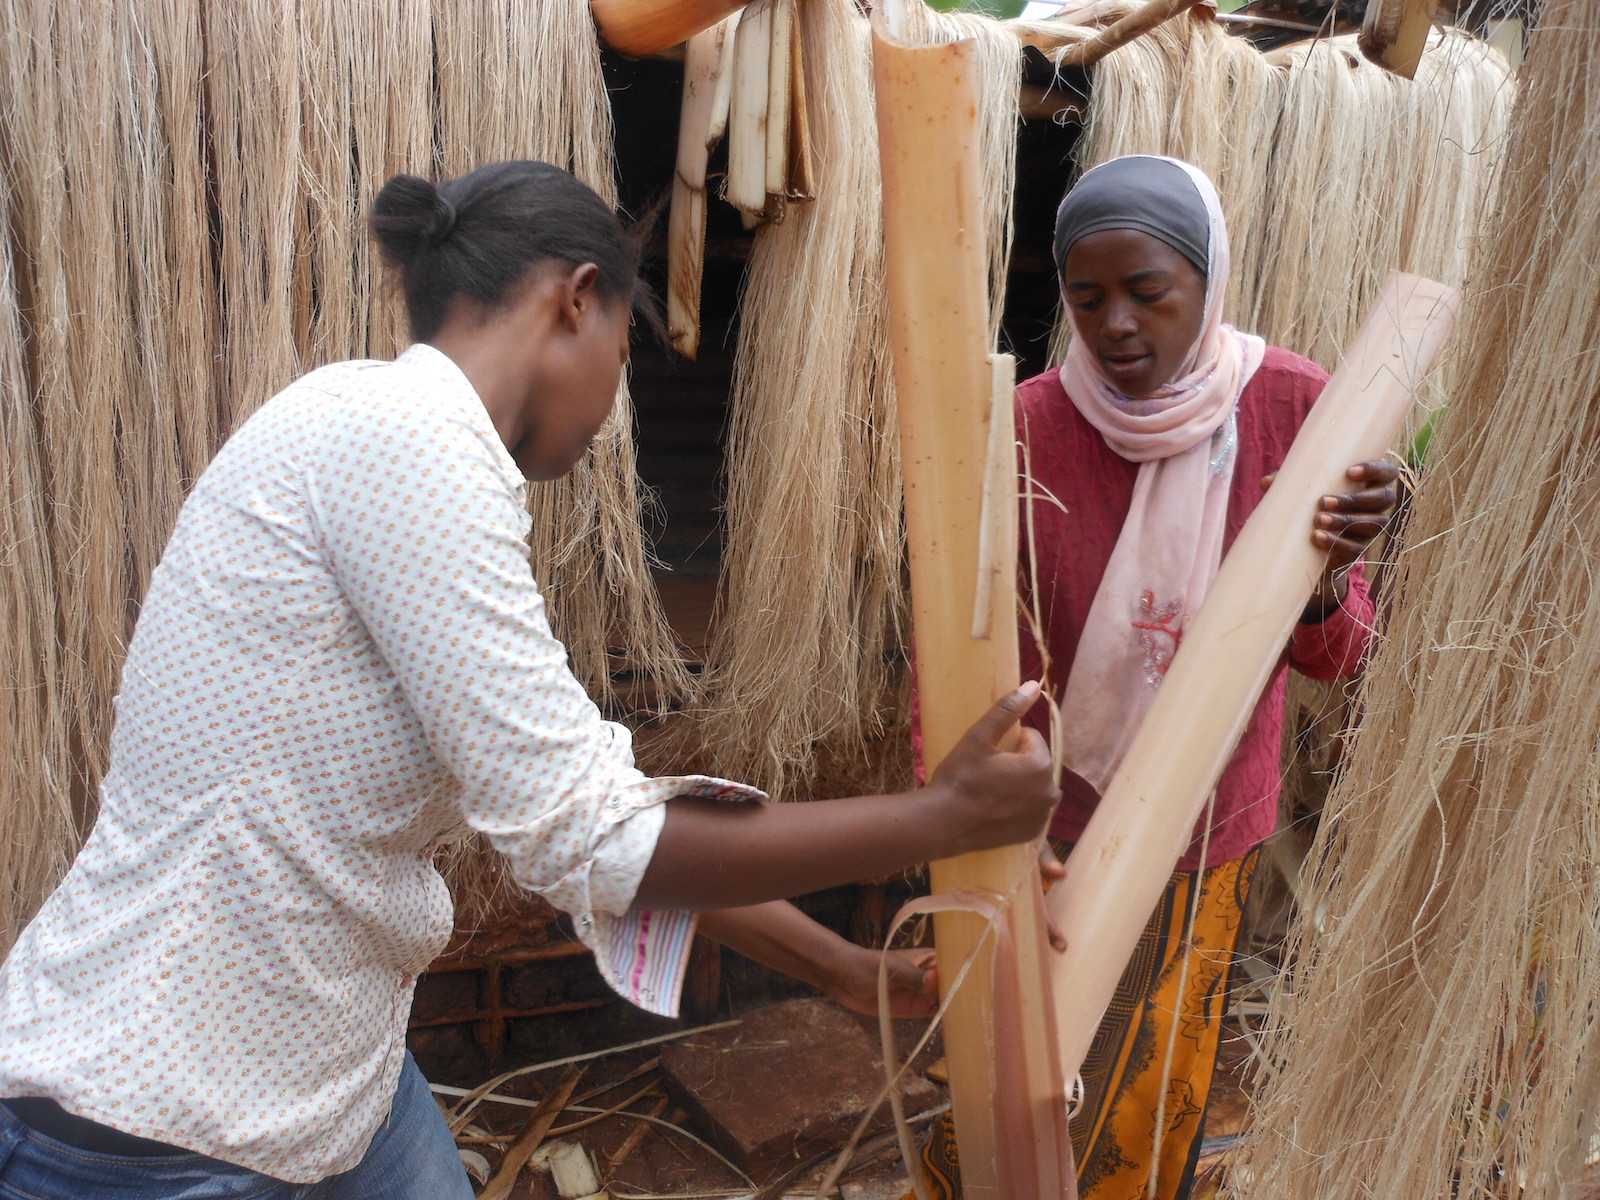 Sustainable Health Enterprise is locally manufacturing sanitary pads from banana fibers.